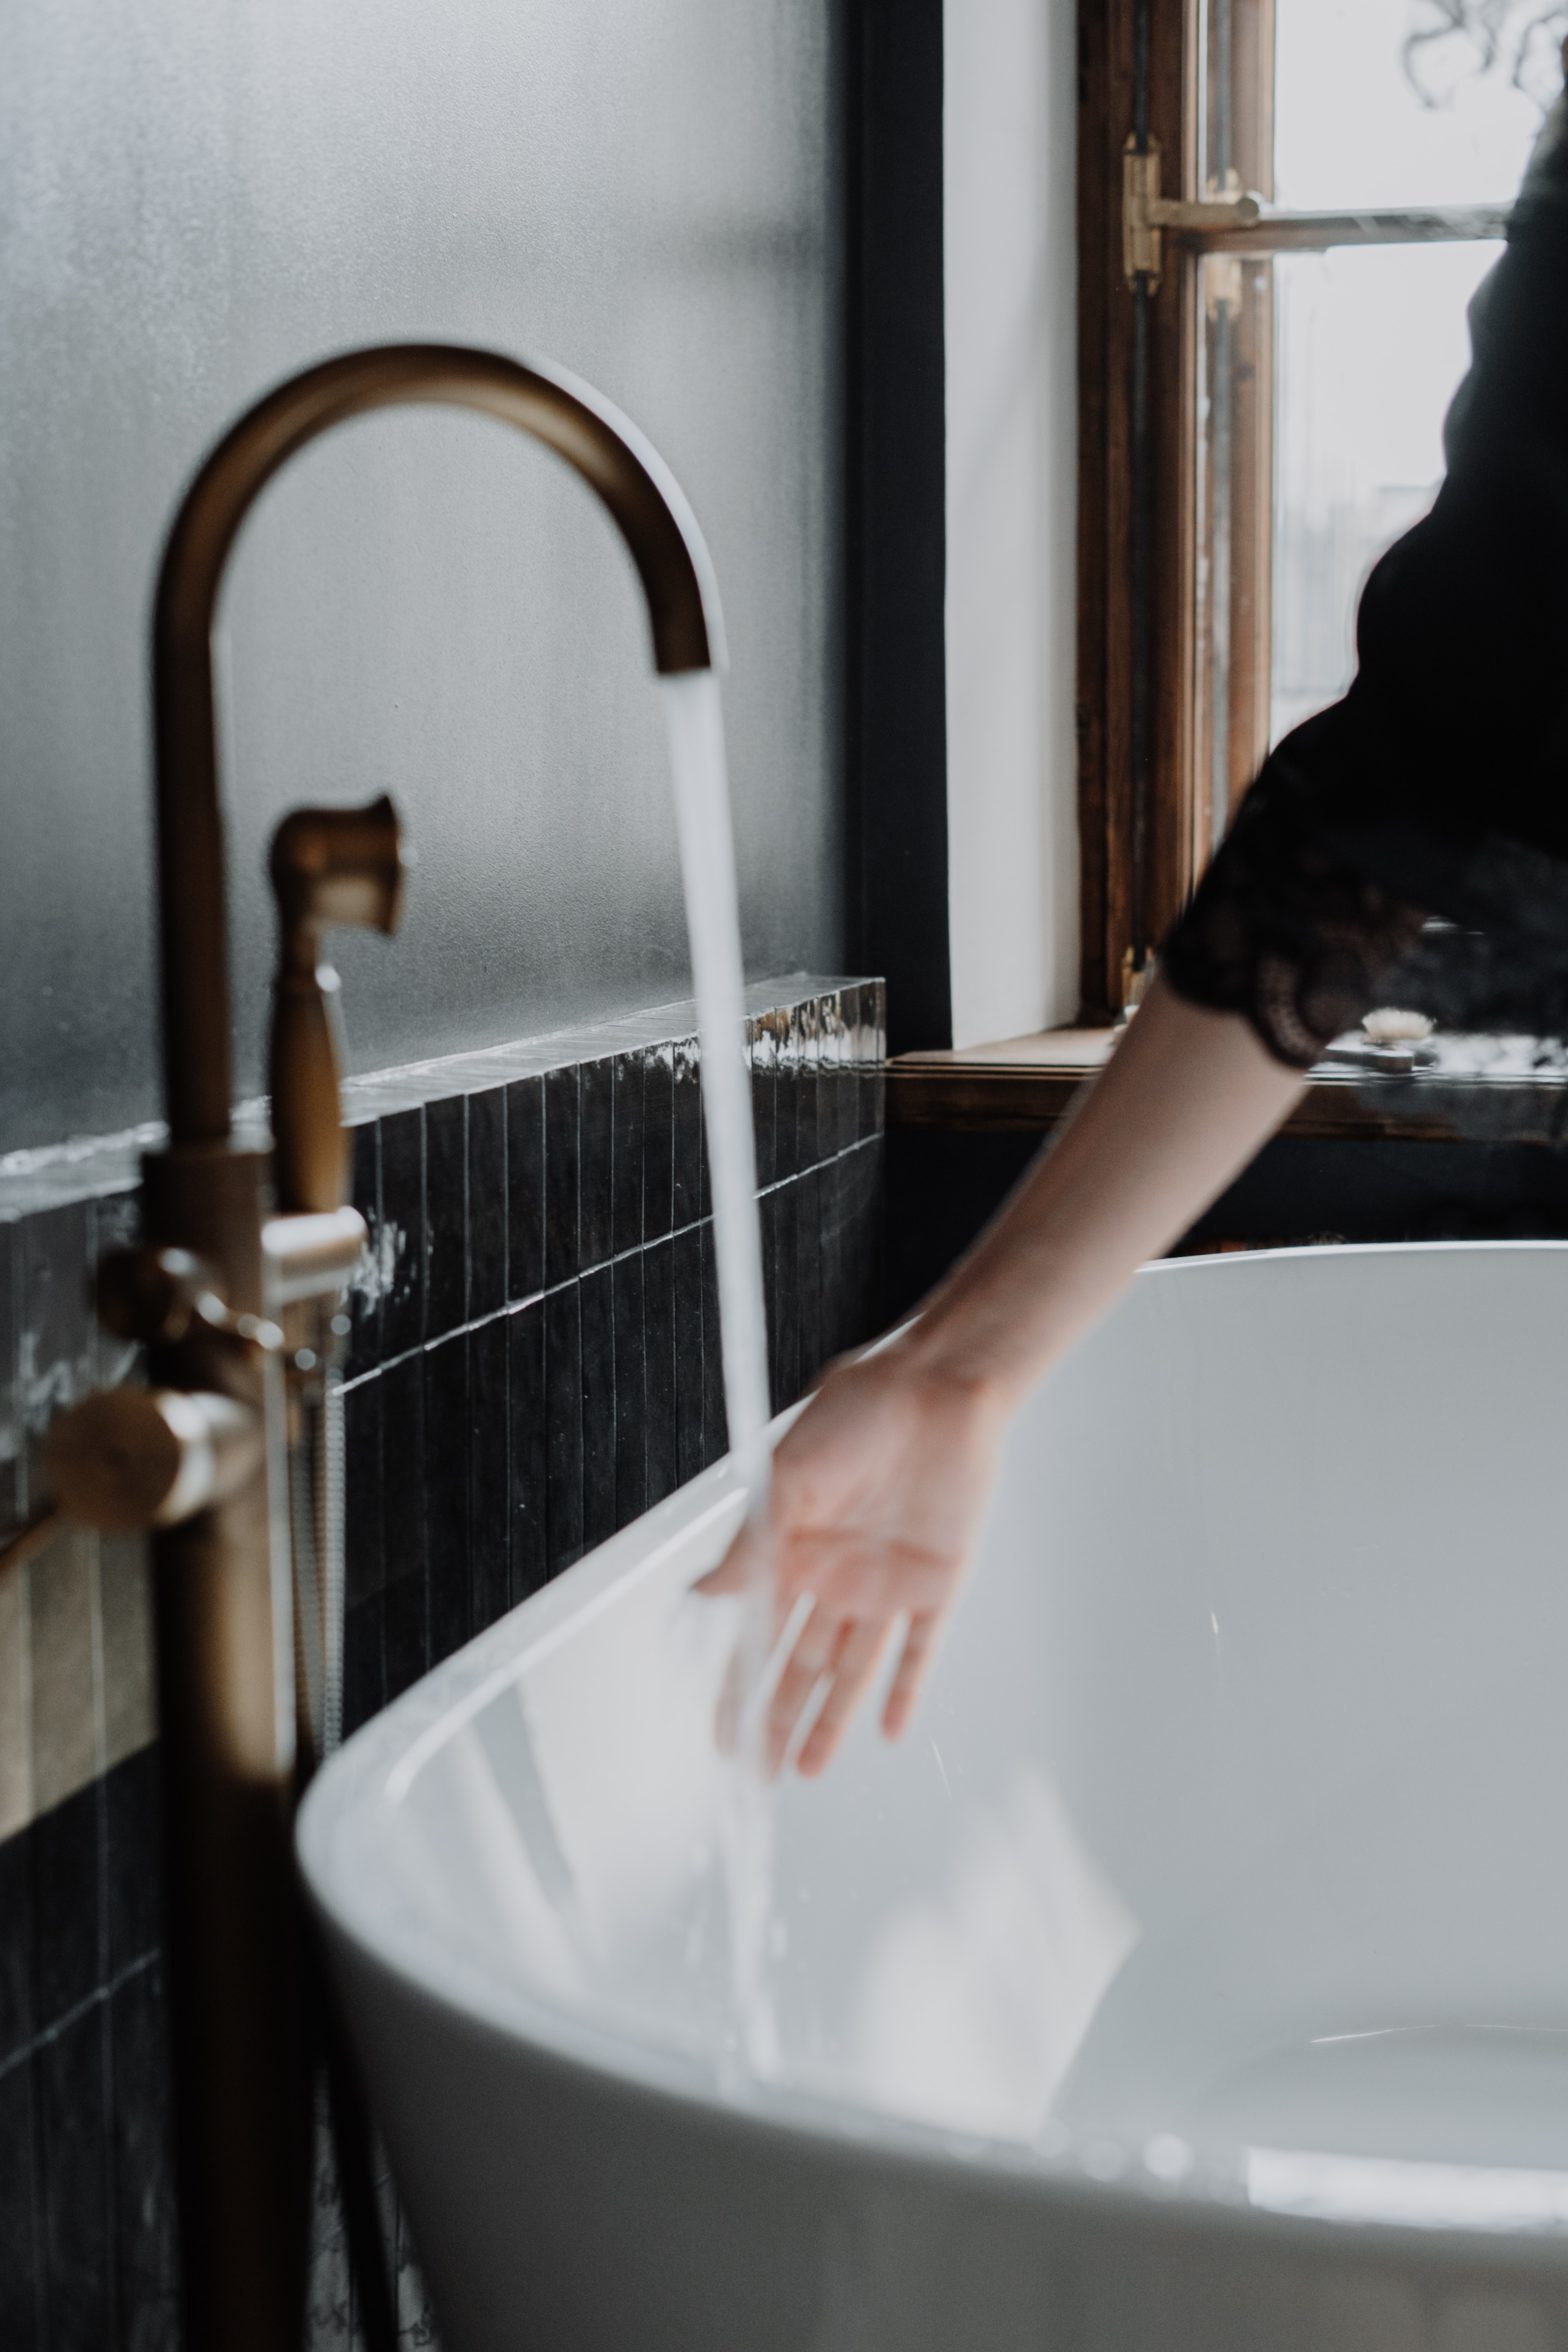 Woman's hand under running water from tub faucet